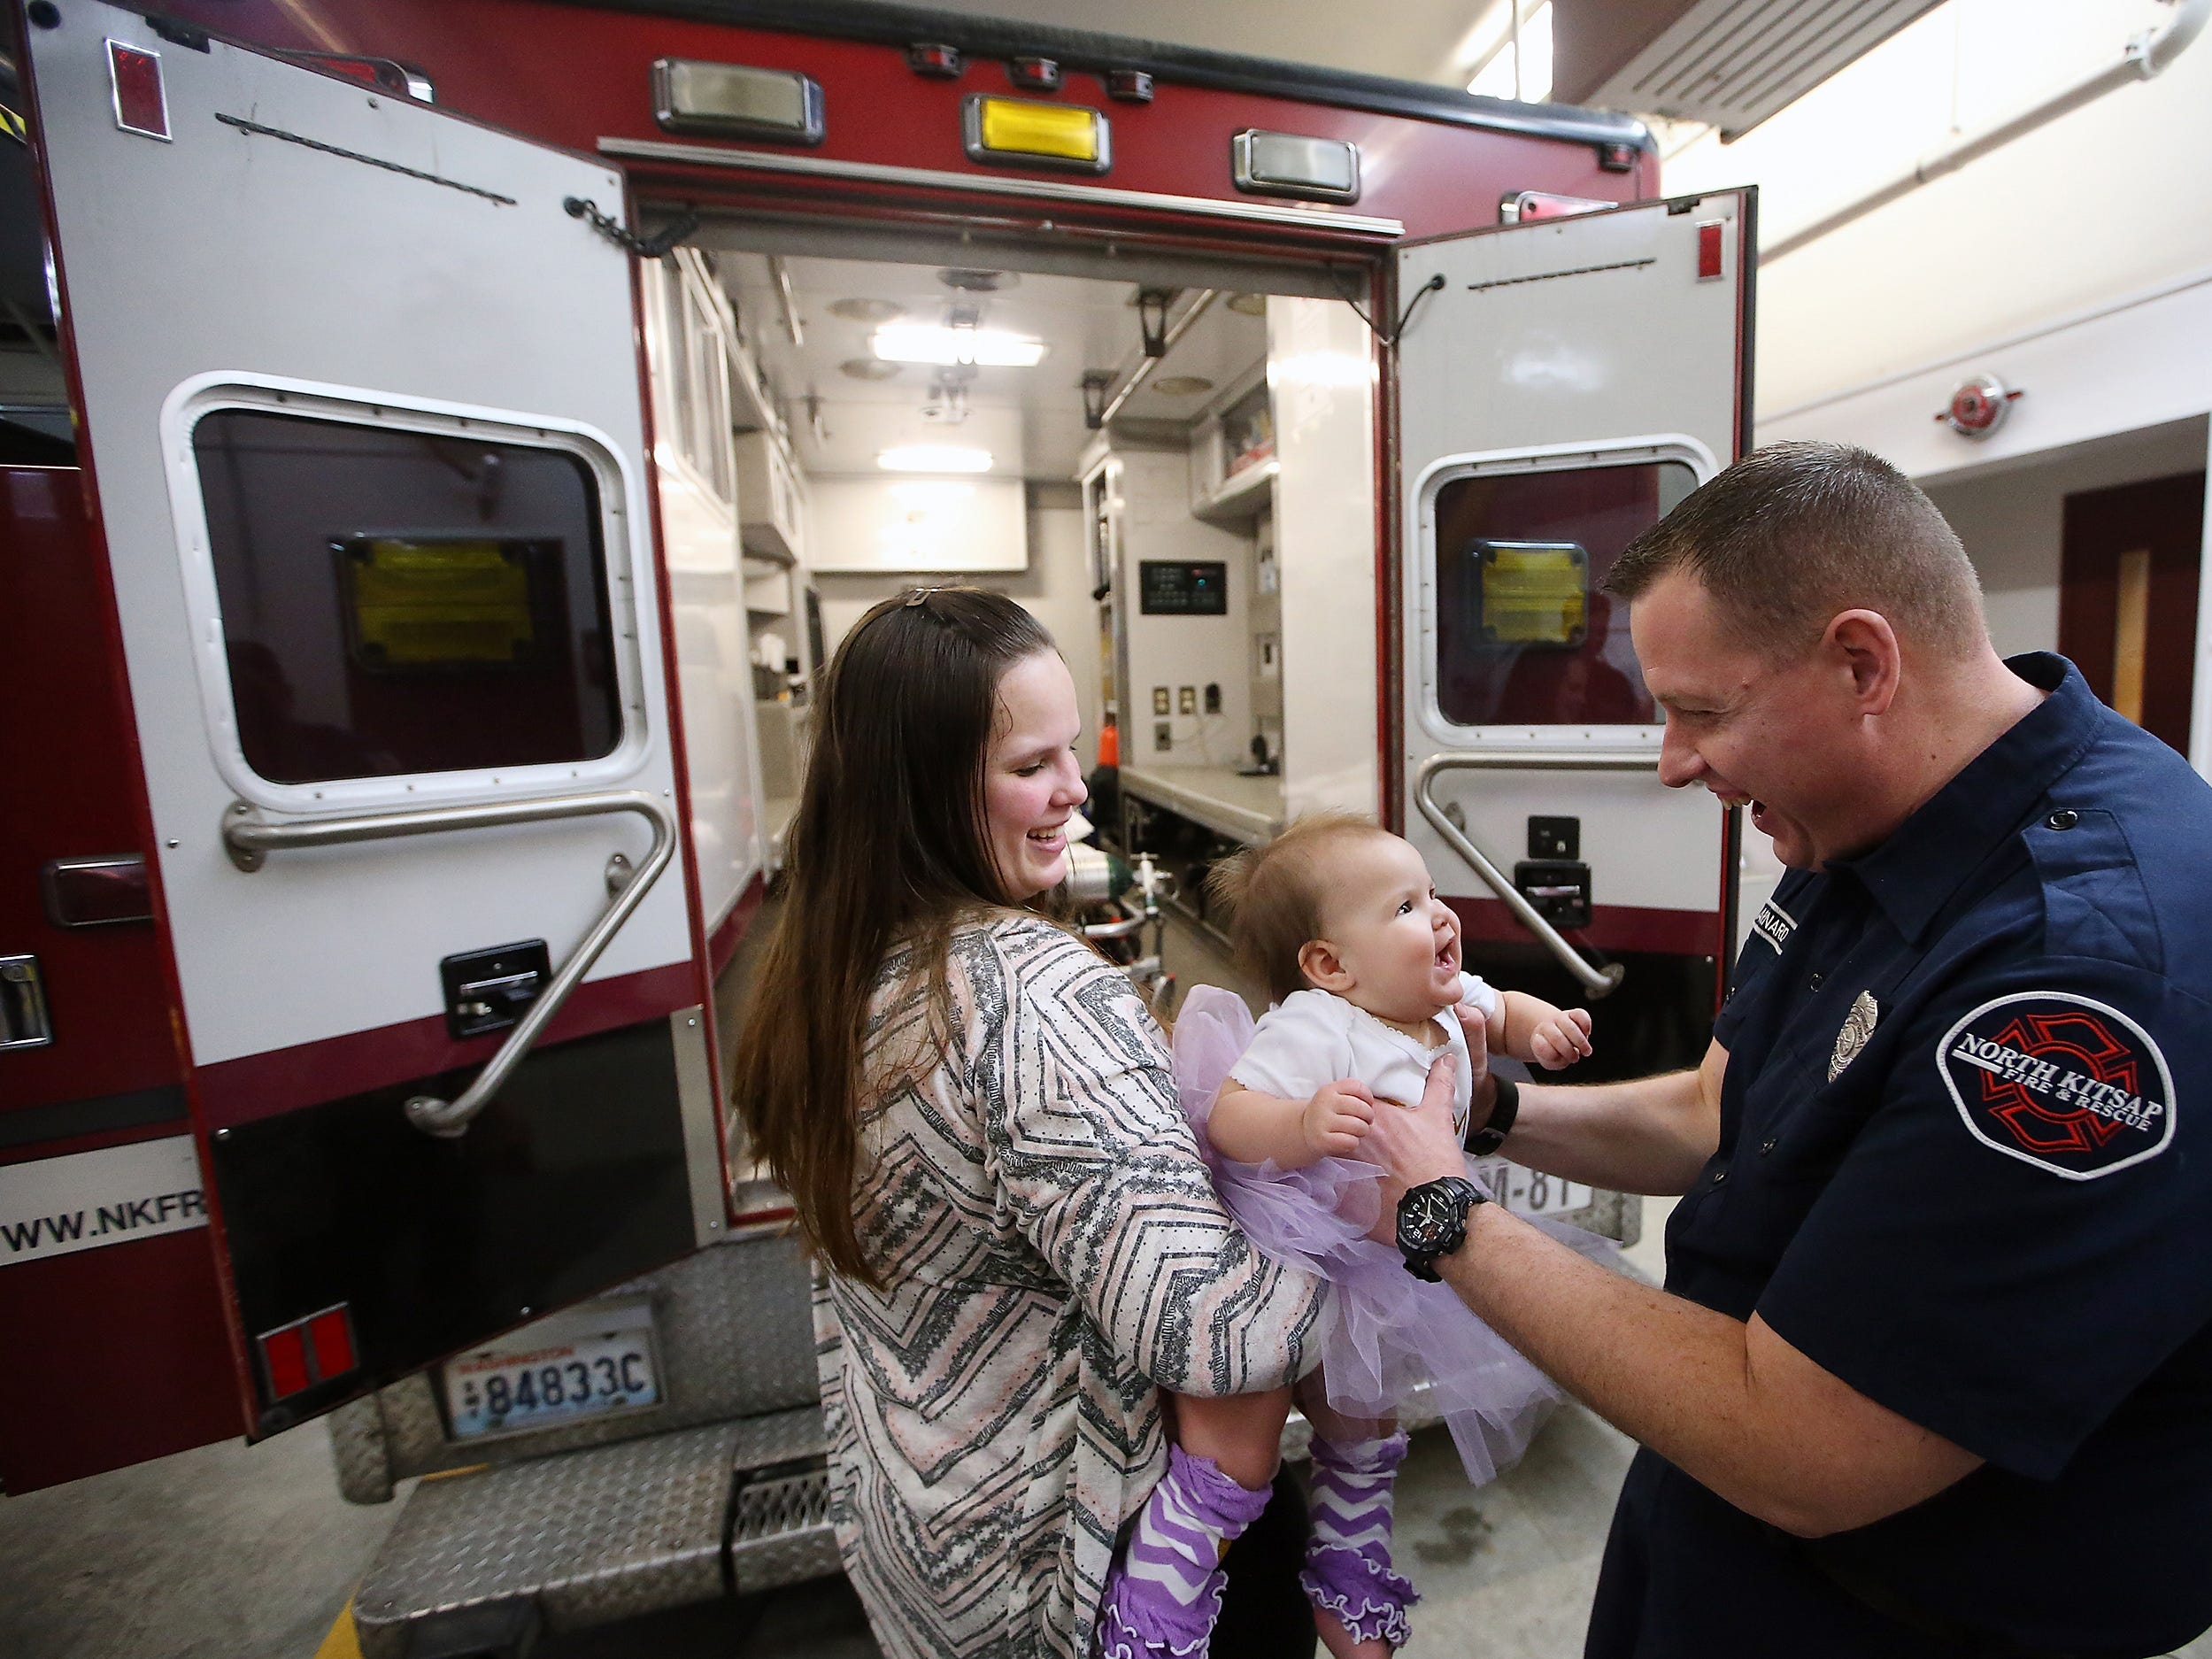 North Kitsap Fire and Rescue firefighter/paramedic Craig Barnard takes one-year-old Eleanor from her mom Lakeisha Rogers while they stand behind Medic 81 at  North Kitsap Fire & Rescue Headquarters Station 81 in Kingston, Washington on Tuesday, Feb. 6, 2018. Barnard delivered Eleanor a year earlier in the back of the medic unit, just before the intersection of SR 307 and SR 305, while transporting them from their Little Boston home to the hospital. The Rogers family stopped by the station to celebrate Eleanor's first birthday with the first responders who were there.